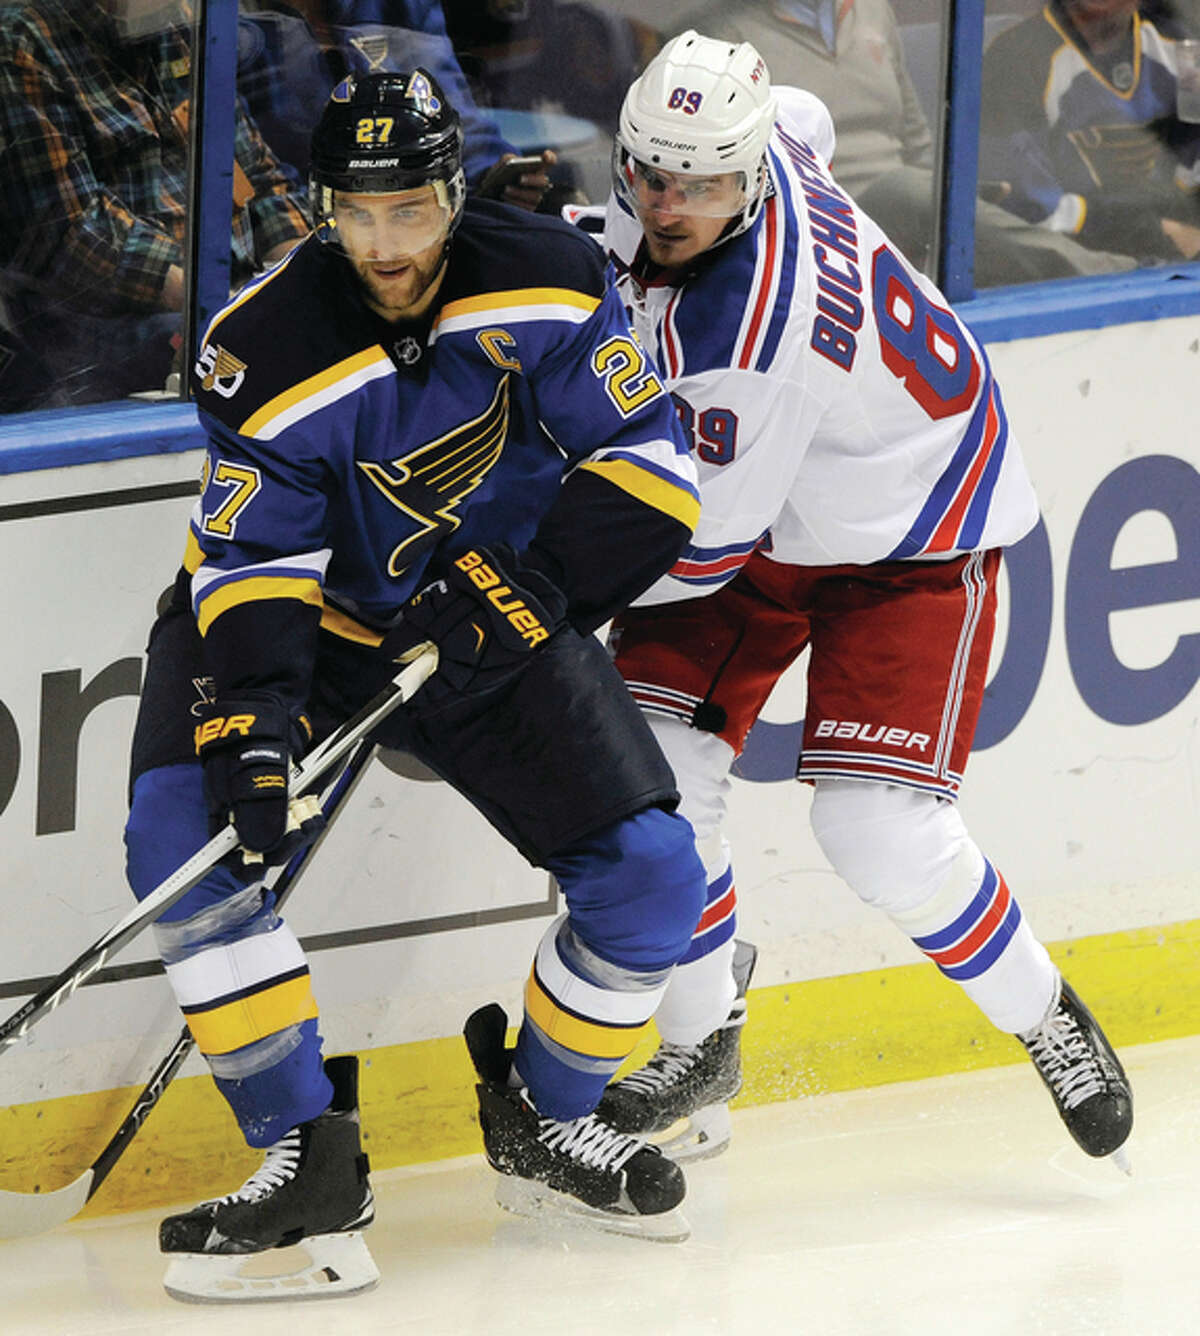 The Rangers' Pavel Buchnevich (right) and the Blues' Alex Pietrangelo look for the puck during the second period of the Blues win Saturday night in St. Louis.